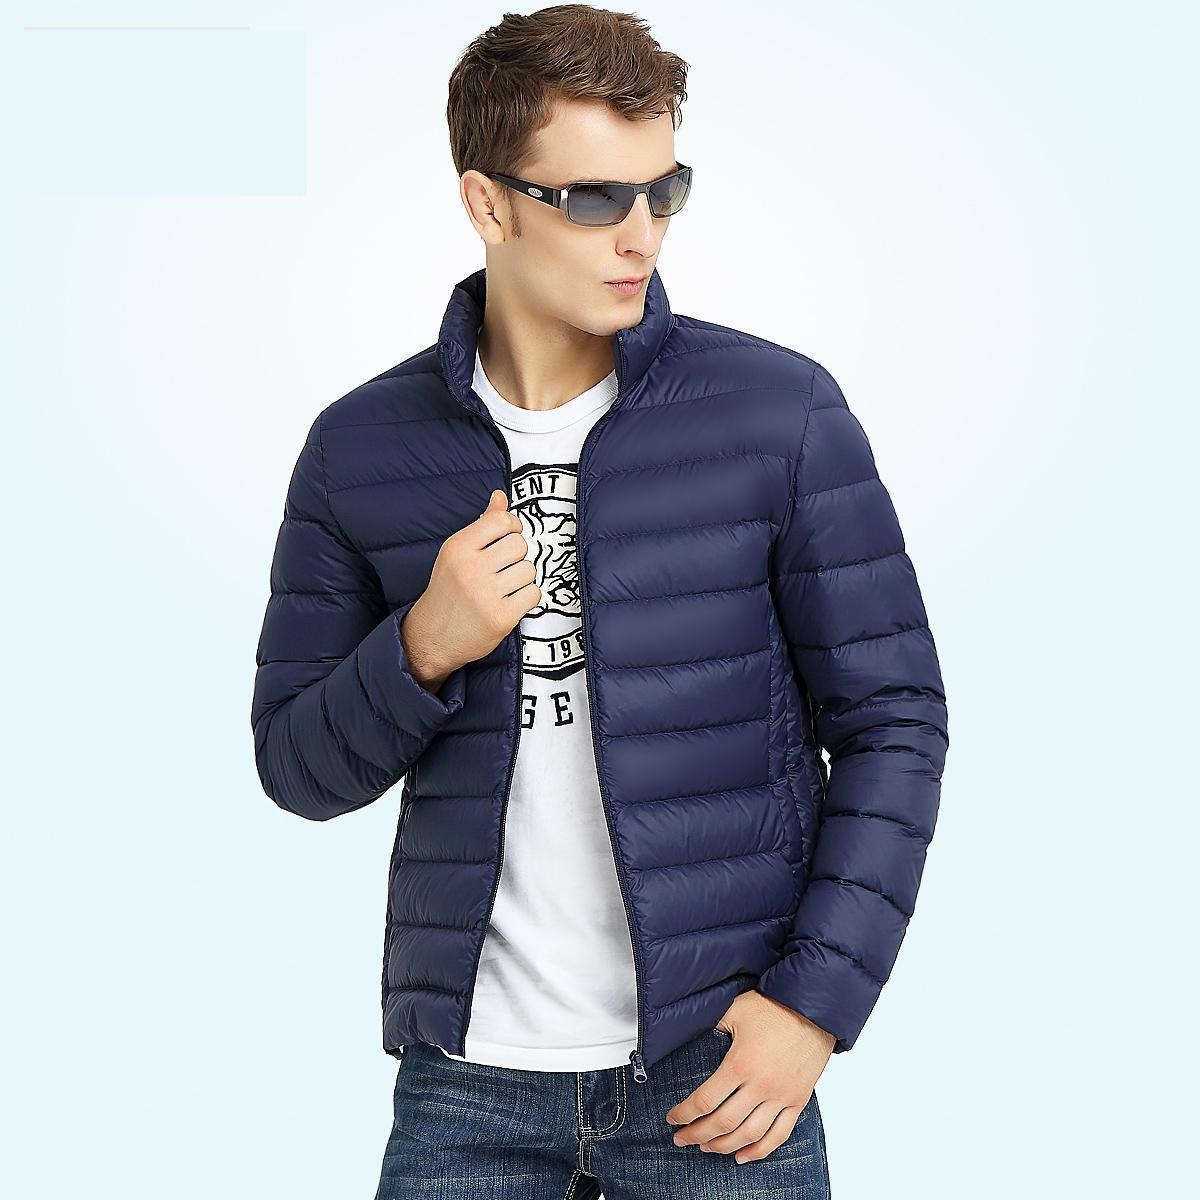 spring Male Cotton-padded Jacket Thickening Wadded Jacket Outerwear Autumn And Winter Short Design Men's Clothing